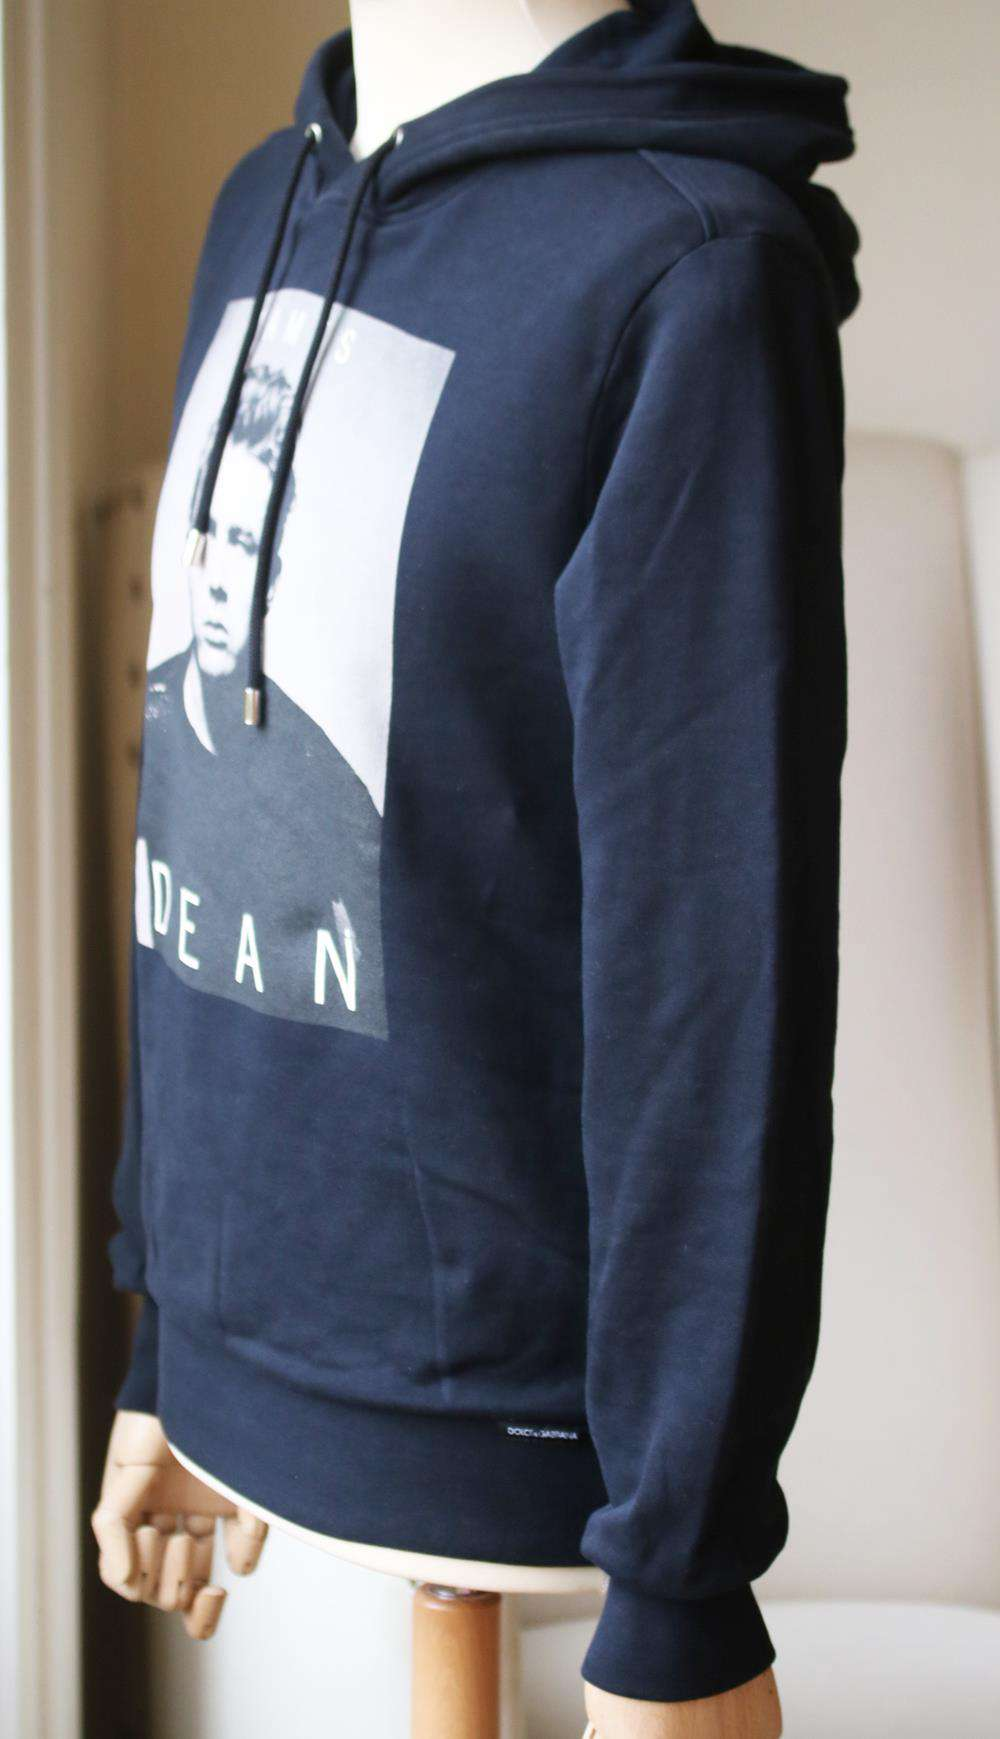 DOLCE AND GABBANA JAMES DEAN PRINTED COTTON HOODIE IT 46 UK 36